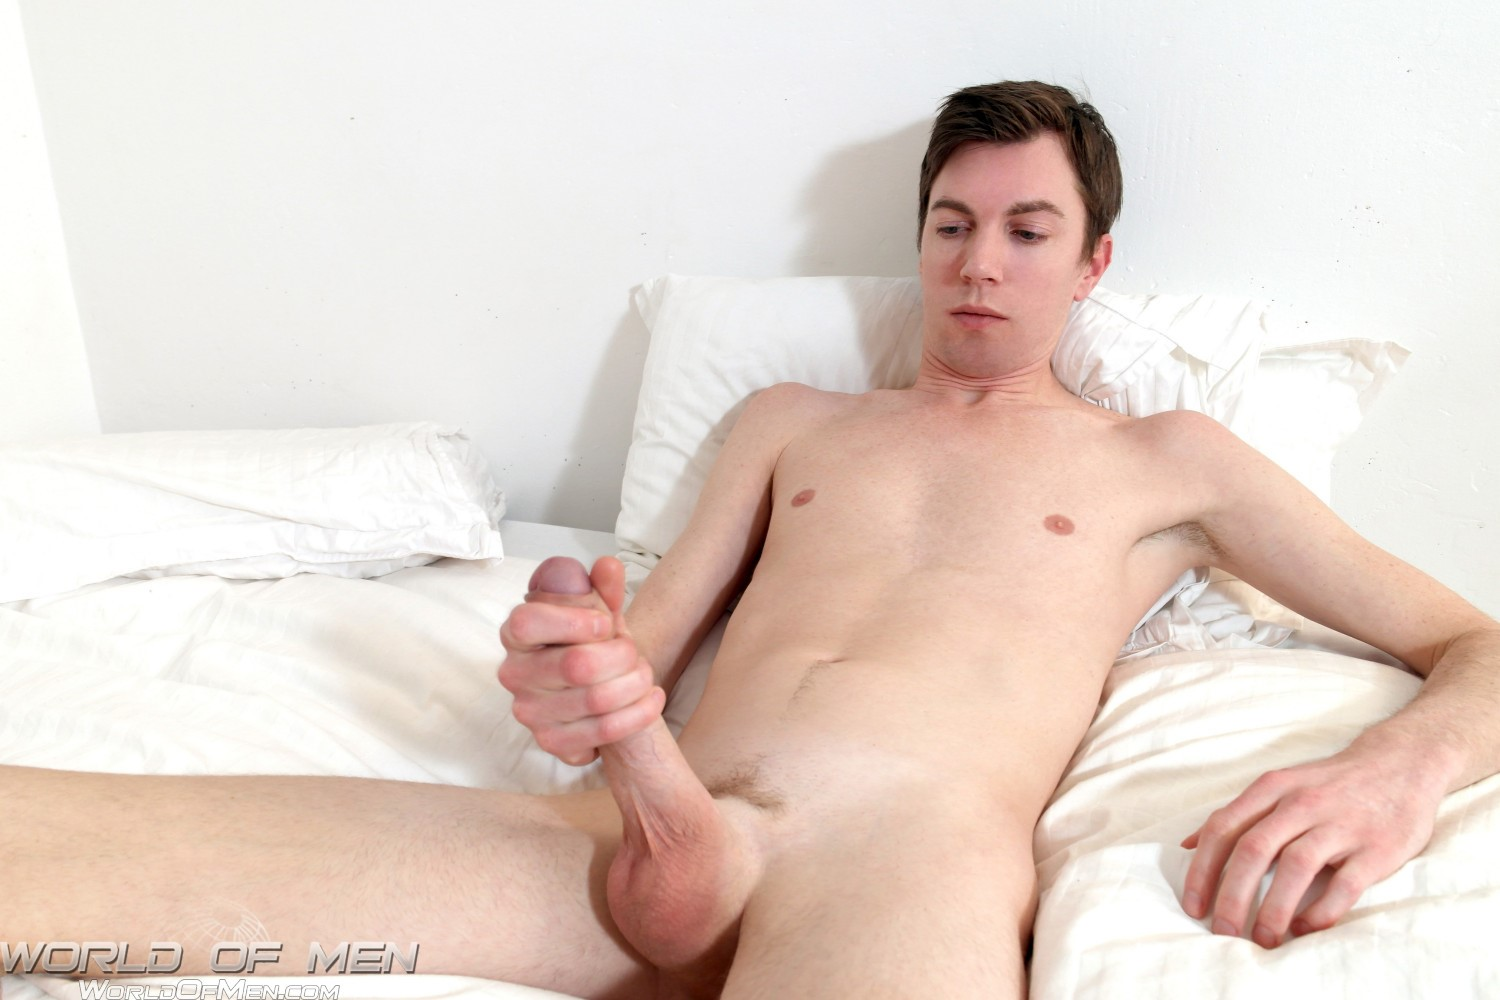 World-of-Men-Bjorn-Swedish-Twink-With-A-Big-Uncut-Cock-Amateur-Gay-Porn-09 Swedish Twink Fingers His Ass And Jerks His Big Uncut Cock